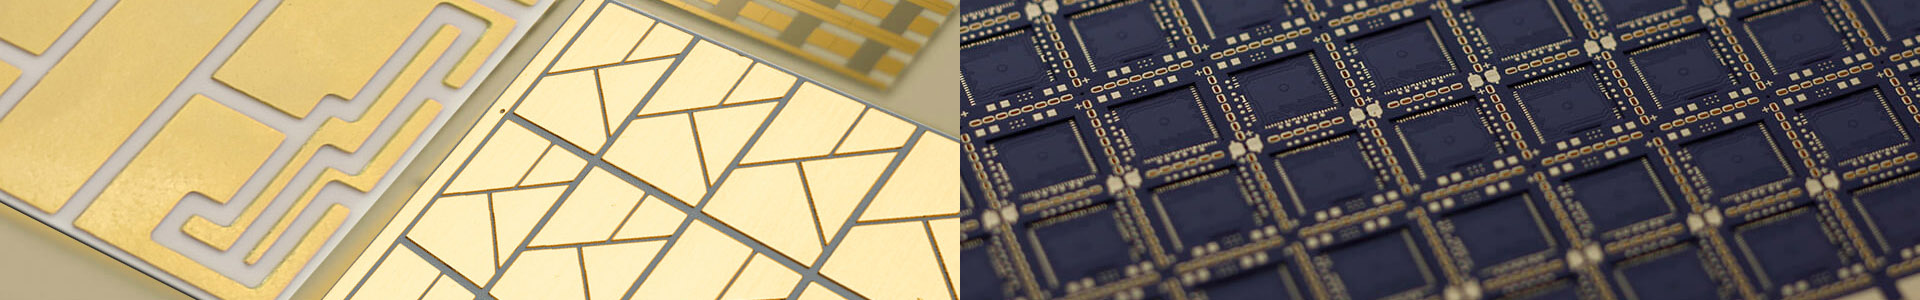 Silicon Nitride Substrate